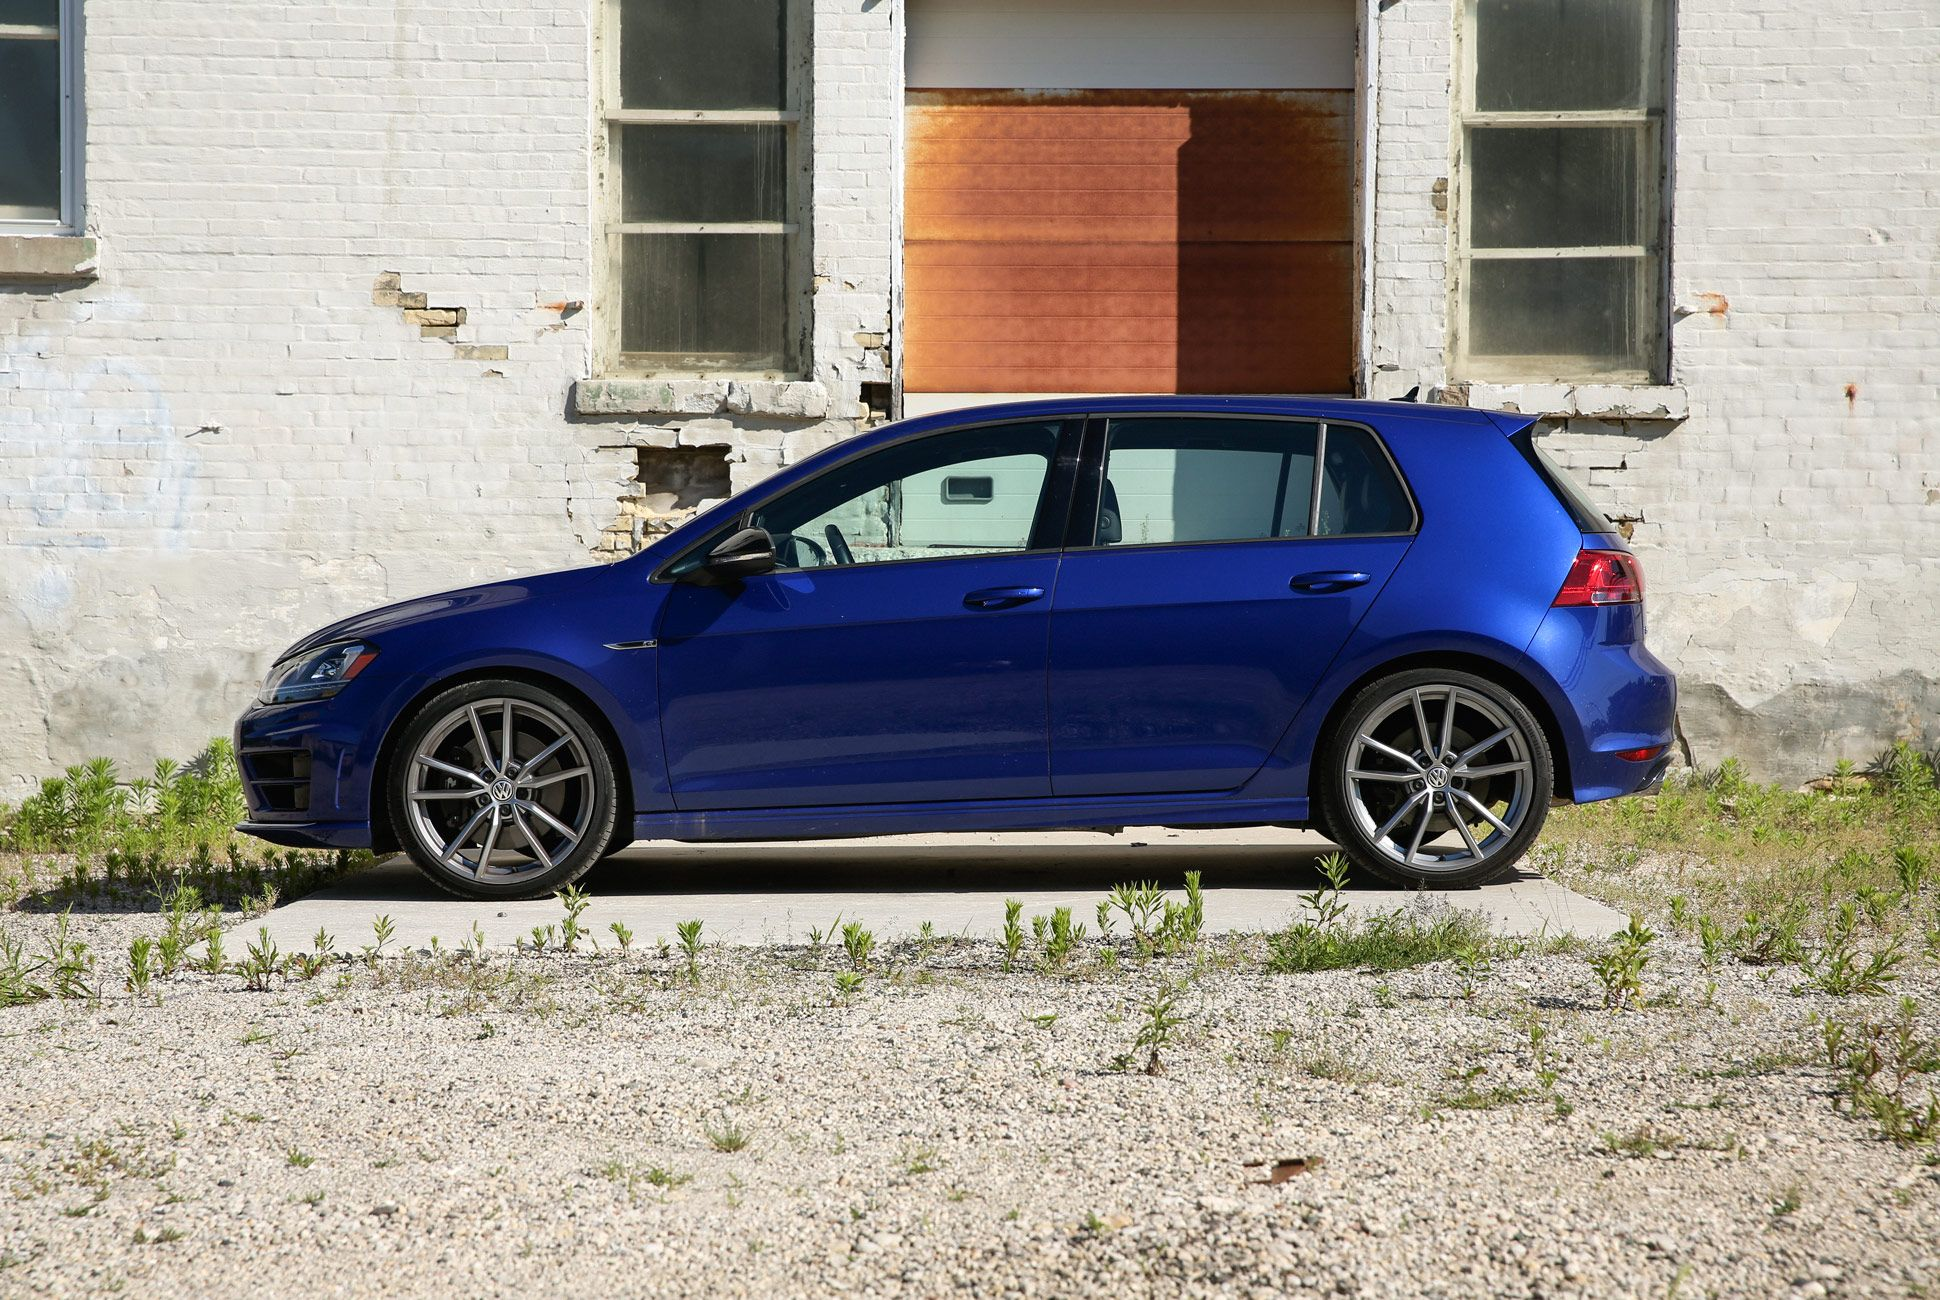 VW-Golf-R-Gear-Patrol-Slide-2